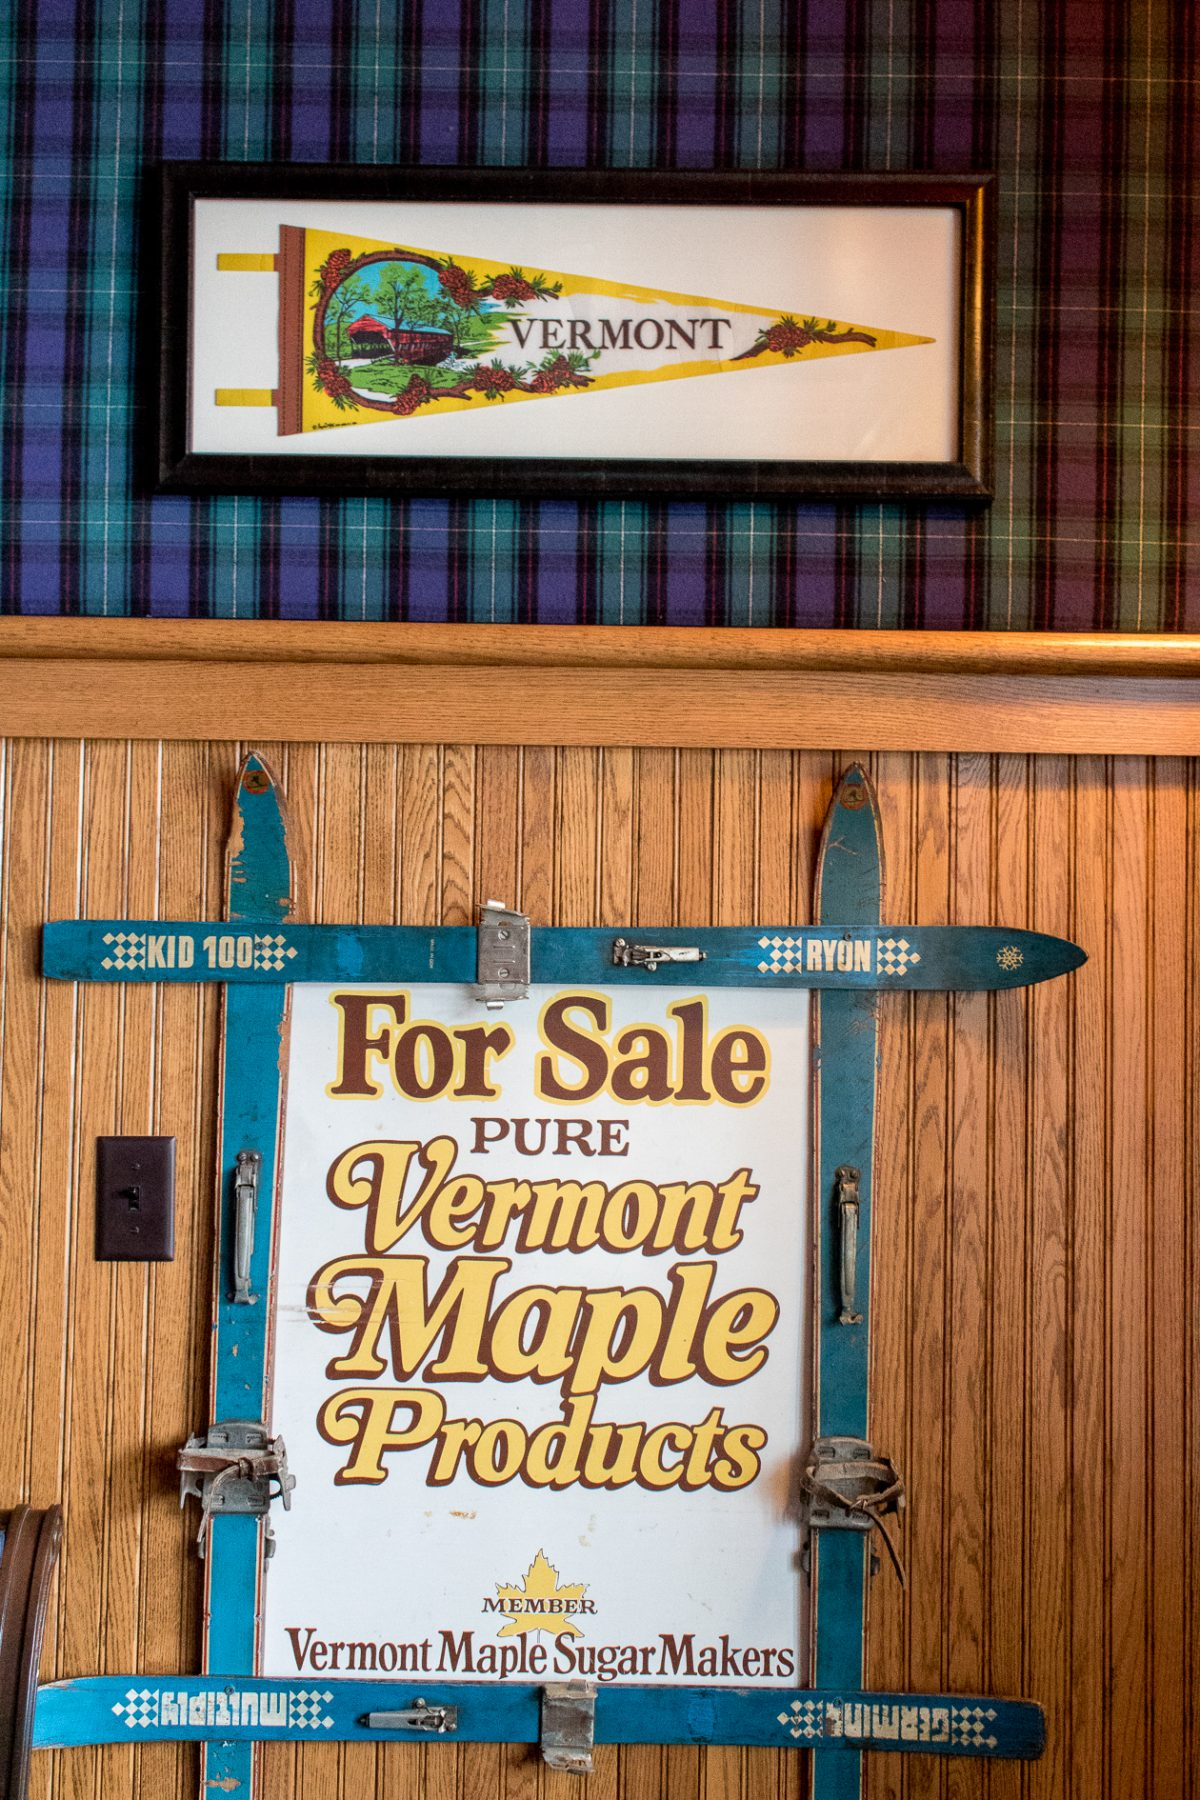 Sign saying For Sale Pure Vermont Maple Products in the Retro Game Room at Woodstock Inn and Resort in Woodstock Vermont